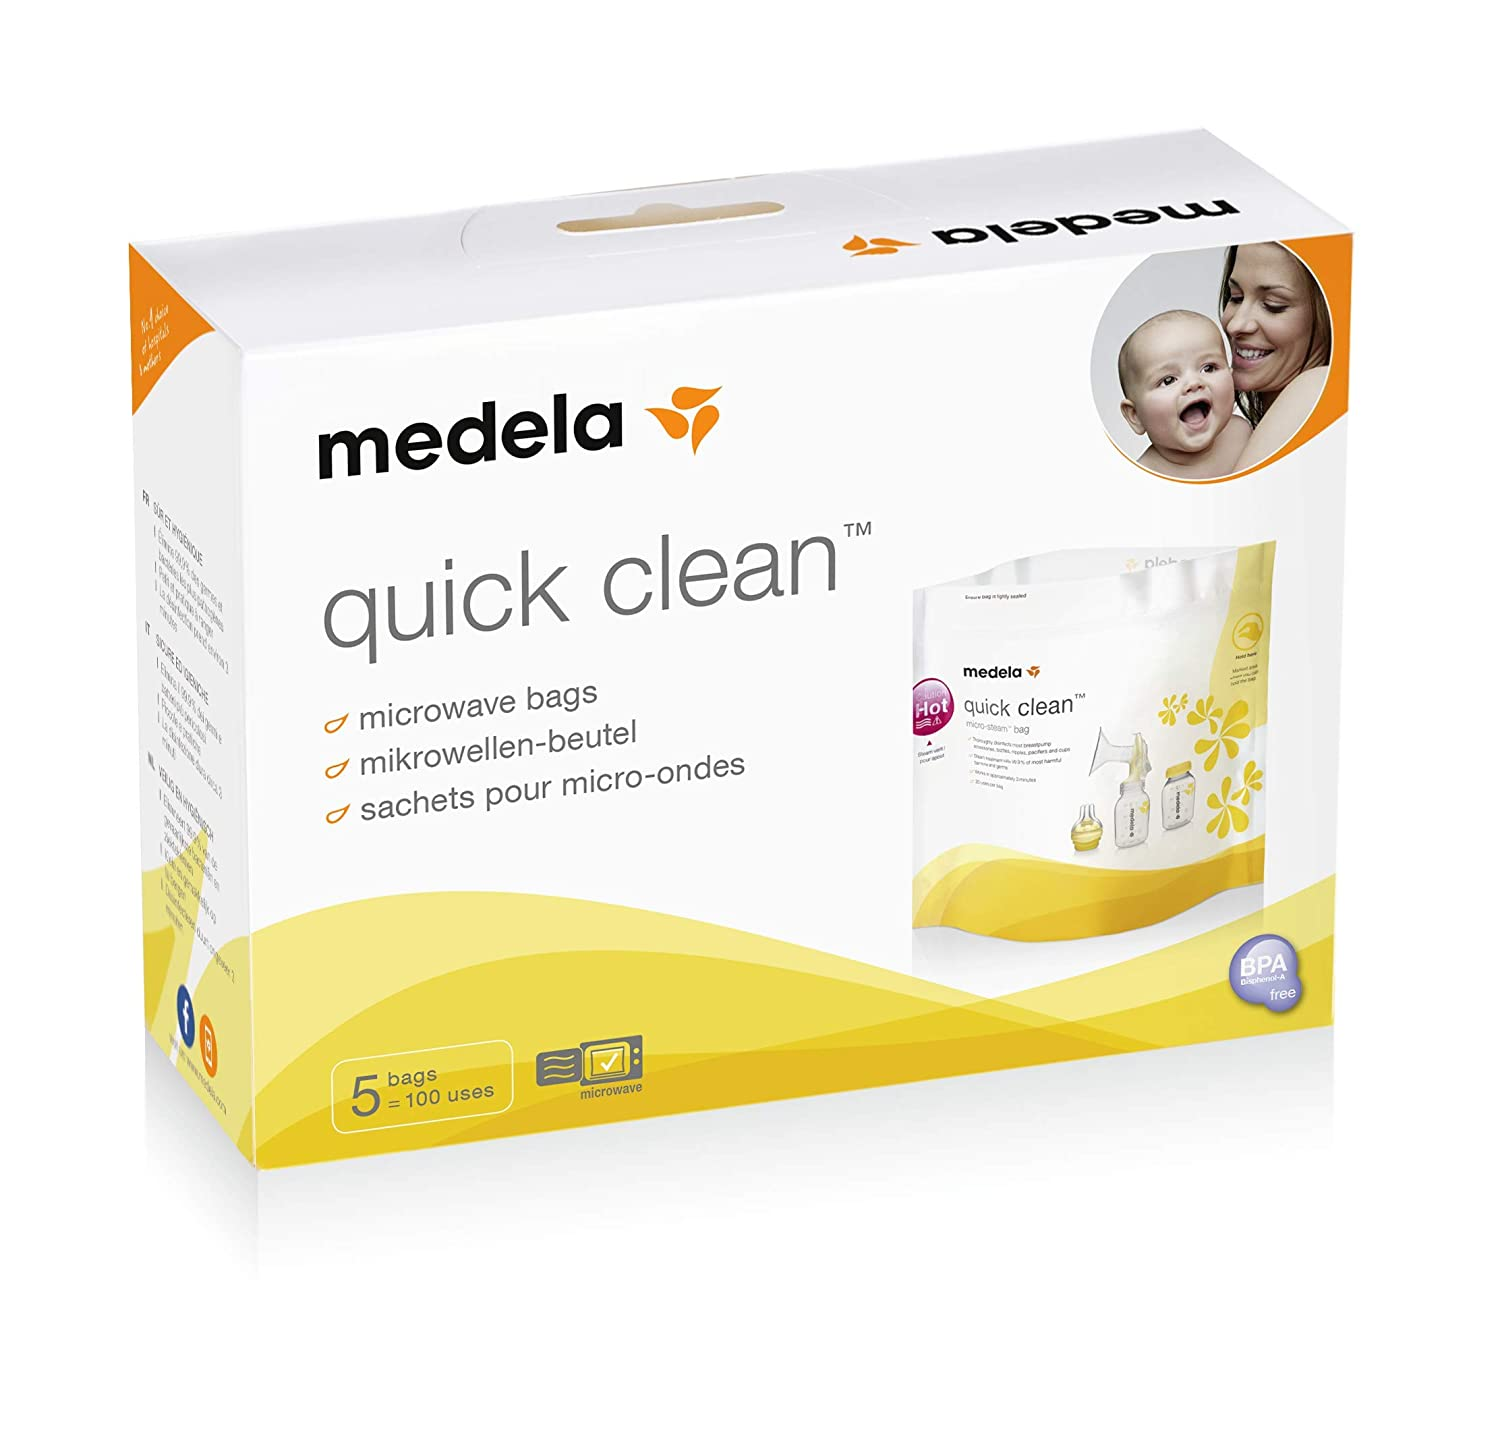 Medela Quick Clean Micro-Steam Sterilisation Bags Healthcenter 008.0040